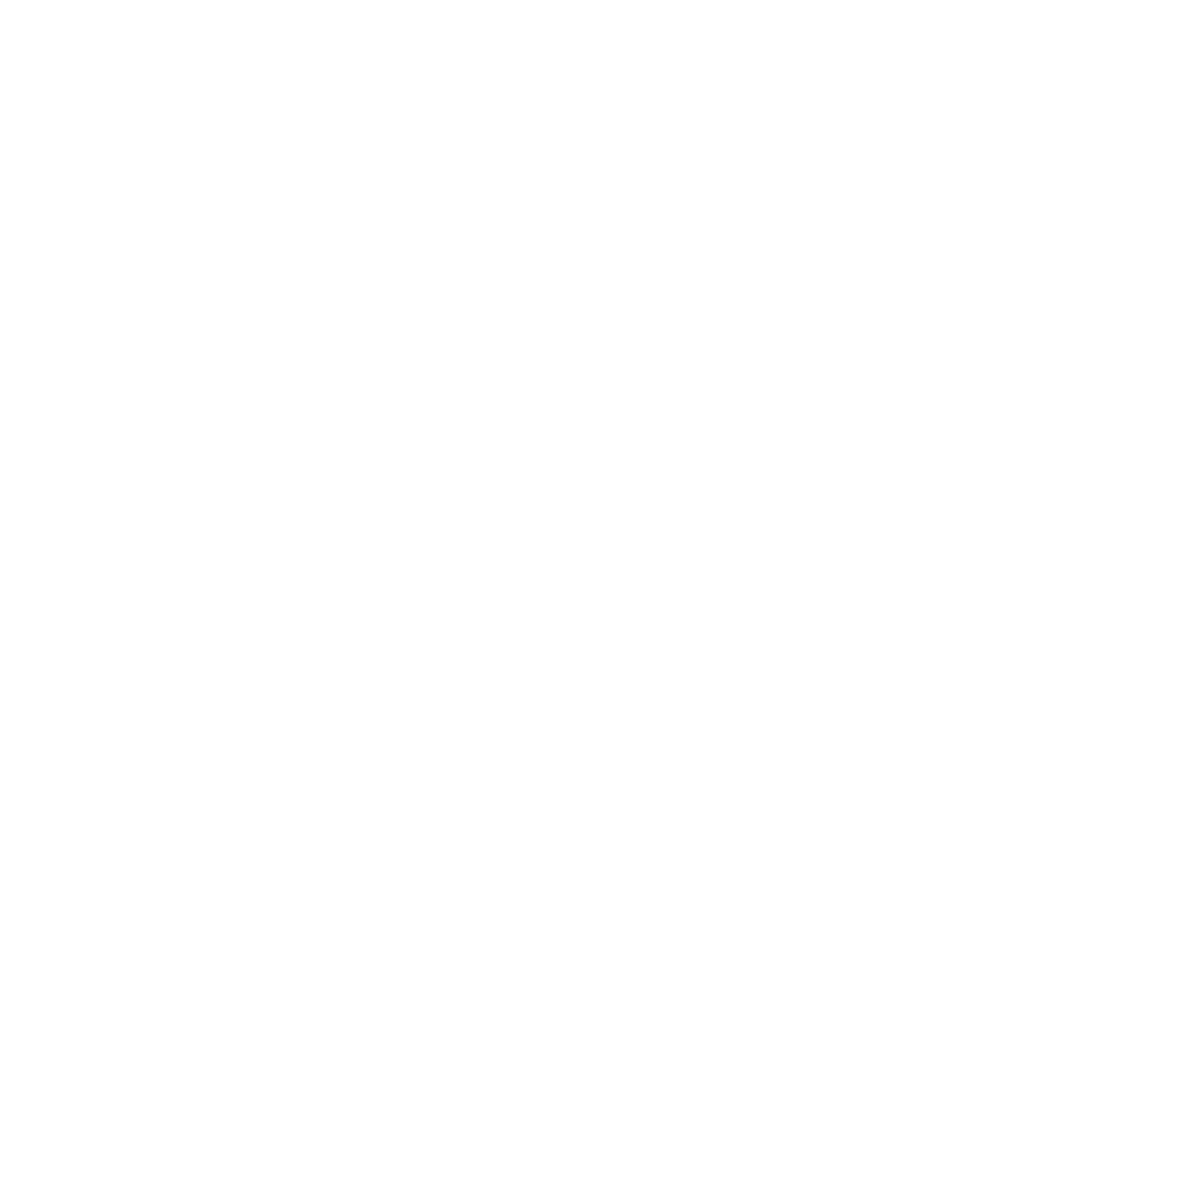 icon-soccer